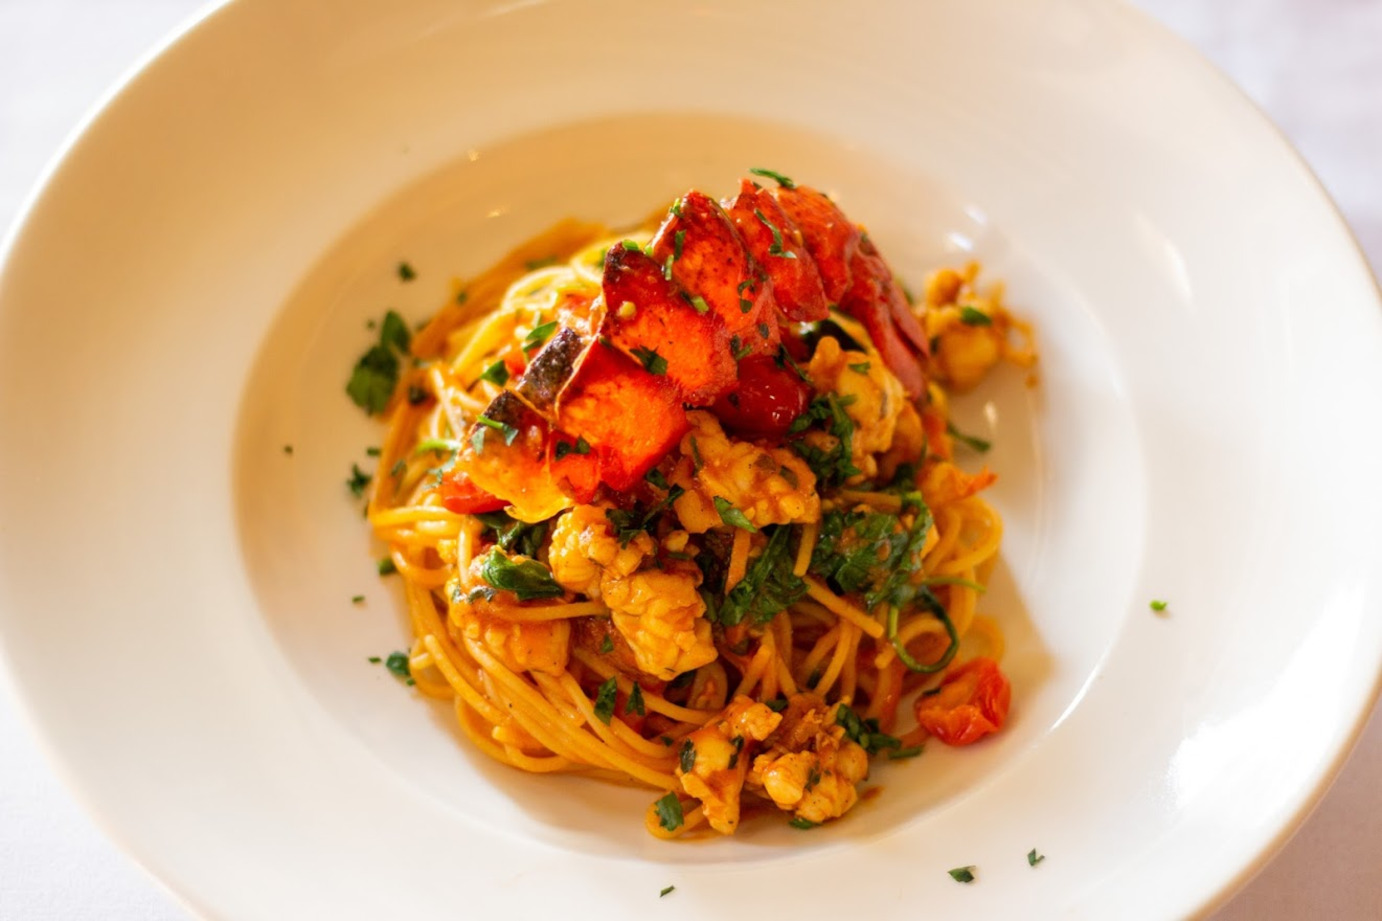 Spaghetti with lobster and parsley on top